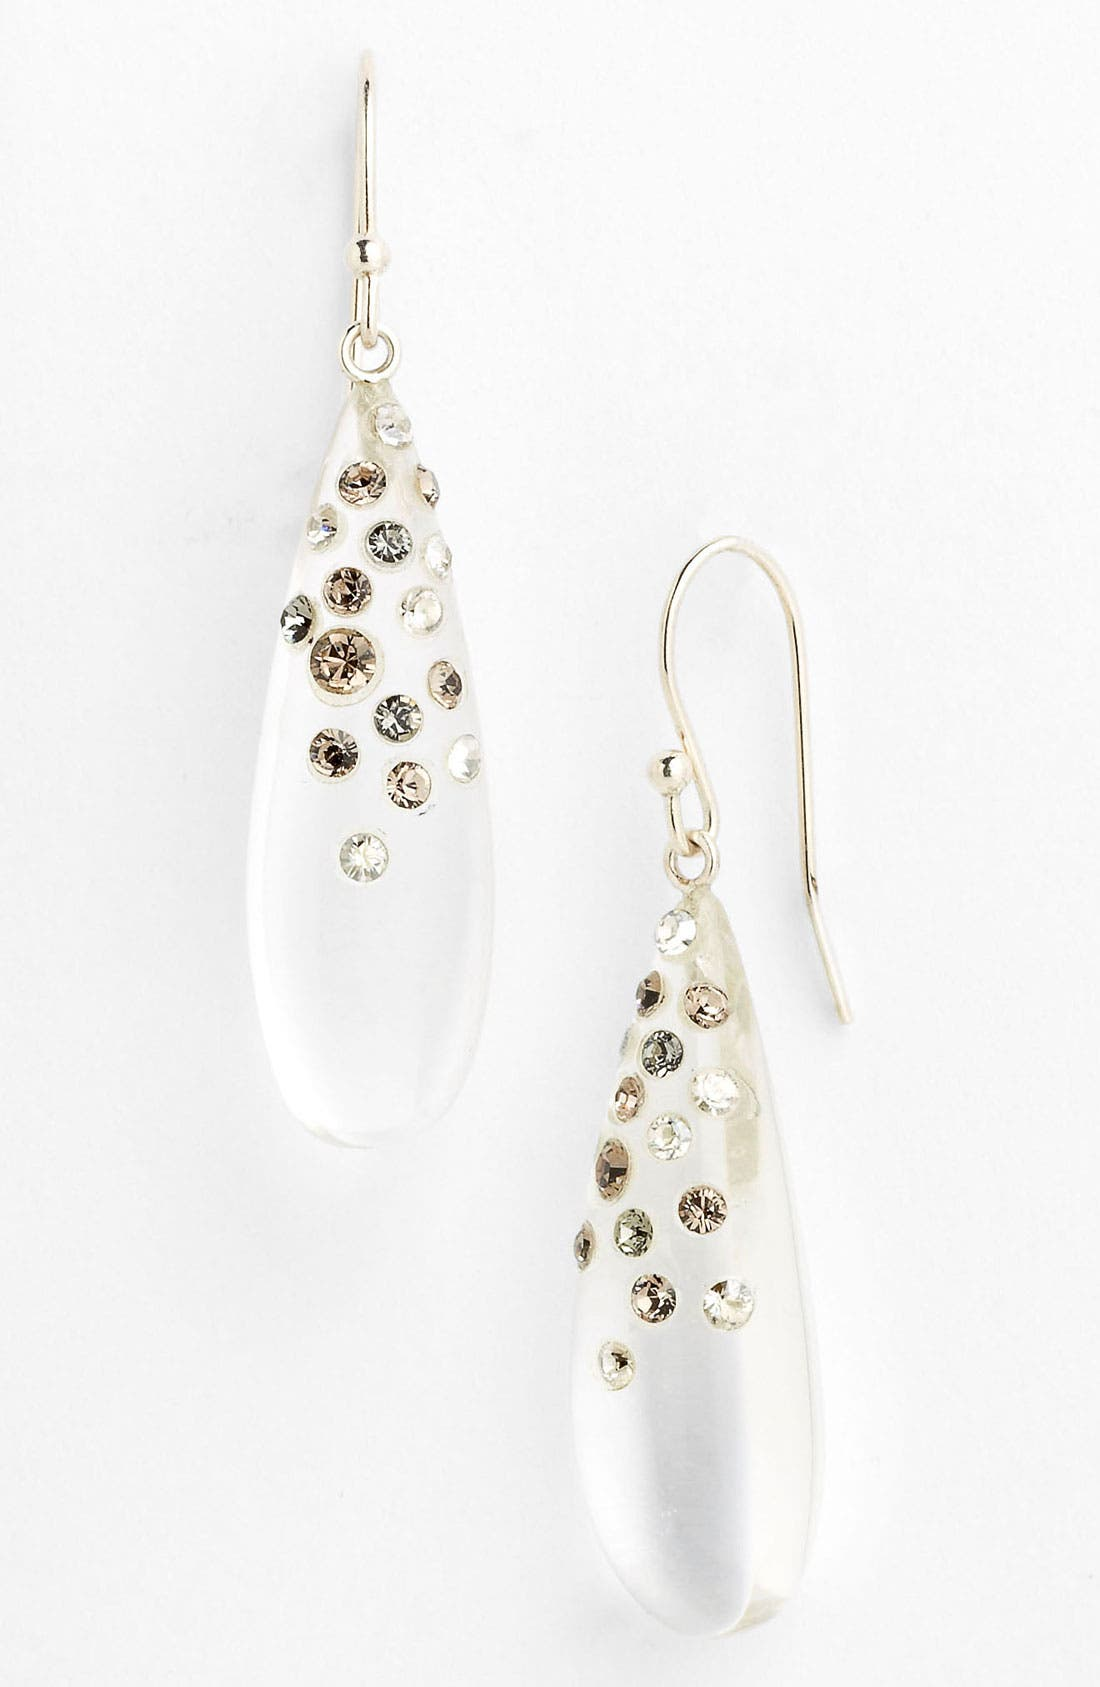 Main Image - Alexis Bittar 'Dust' Long Raindrop Earrings (Nordstrom Exclusive)